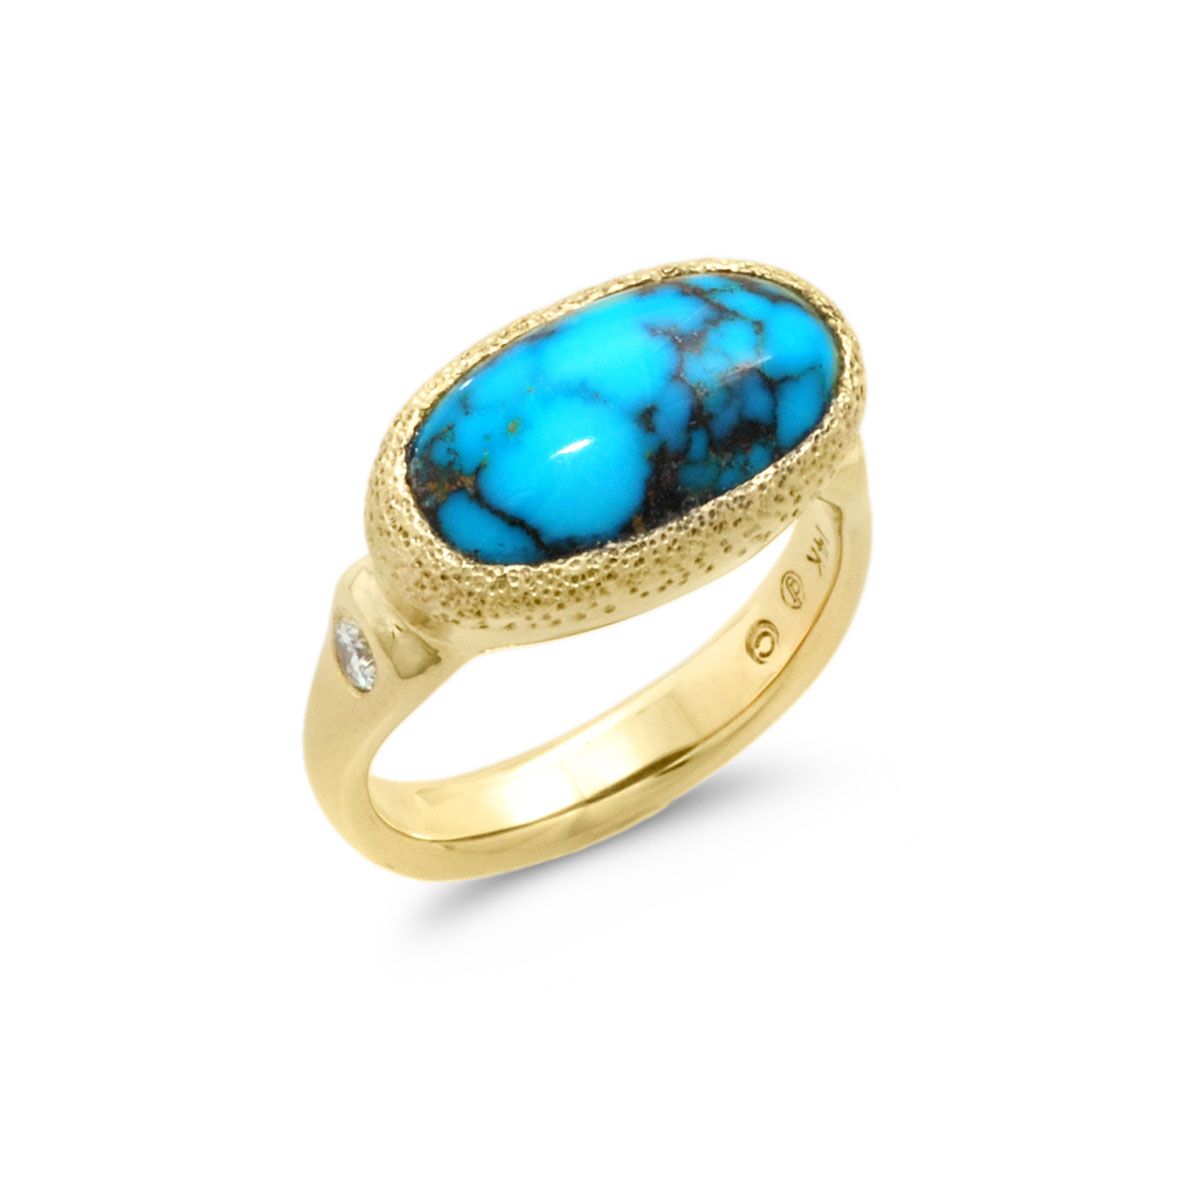 IND0998 Oval Turquoise Ring